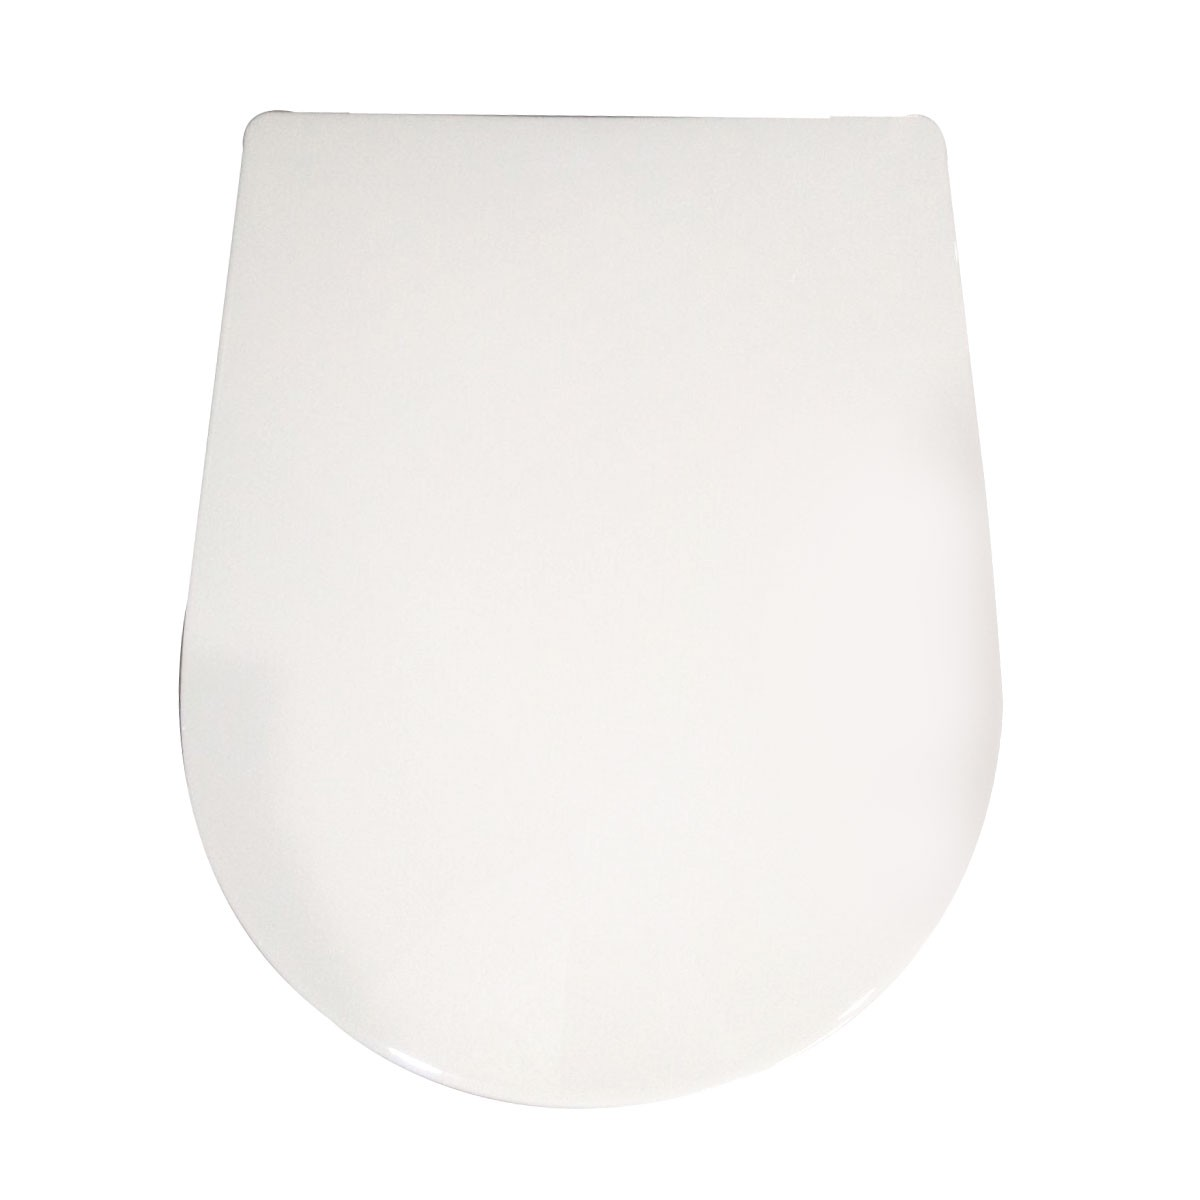 White Soft Close Toilet Seat with Cover (DK-CL-010)